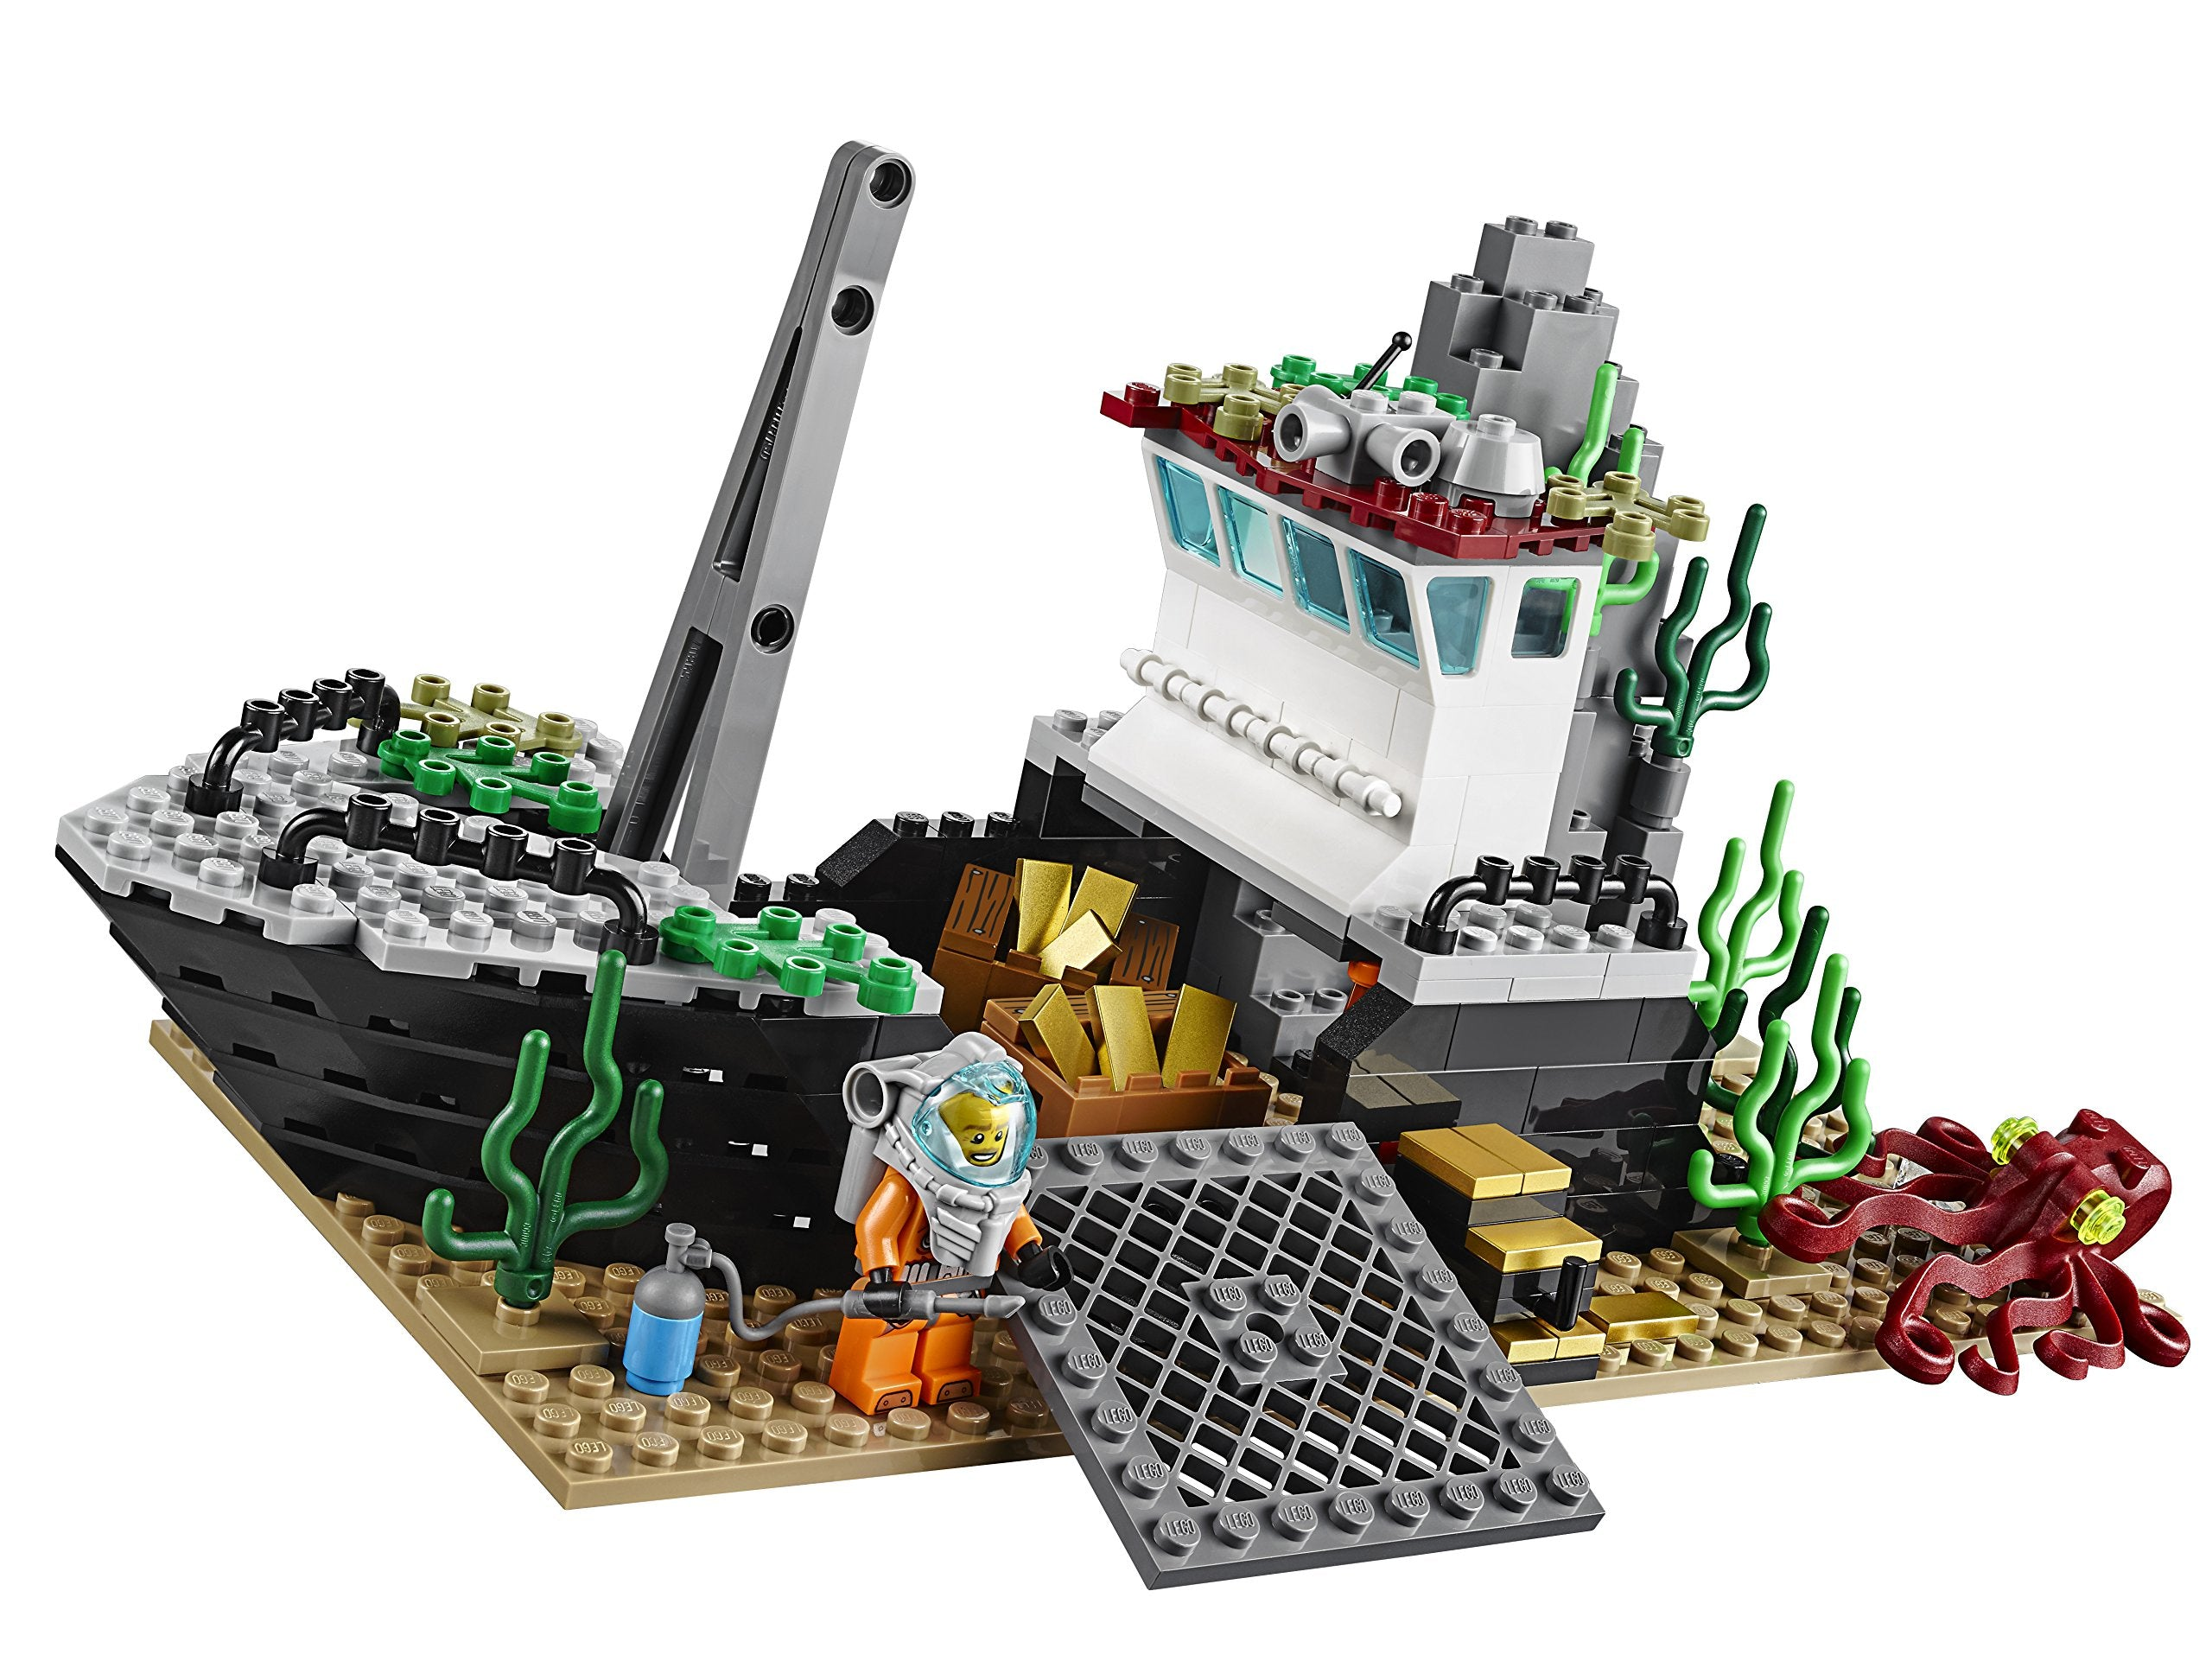 LEGO City Deep Sea Explorers 60095 Exploration Vessel Building Kit